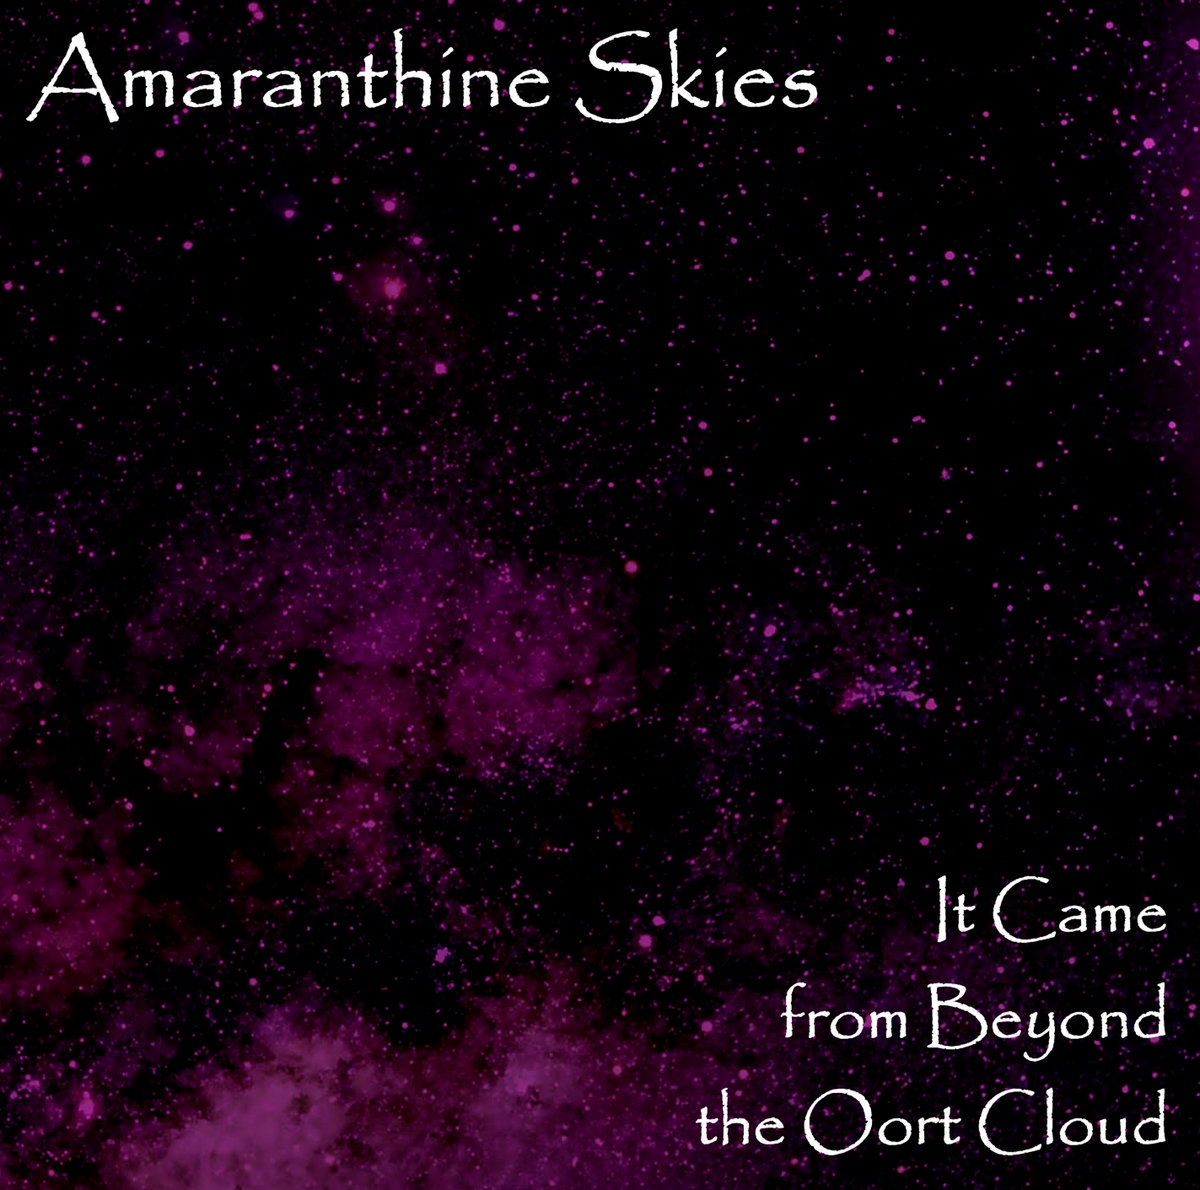 Amaranthine Skies - It Came from Beyond the Oort Cloud